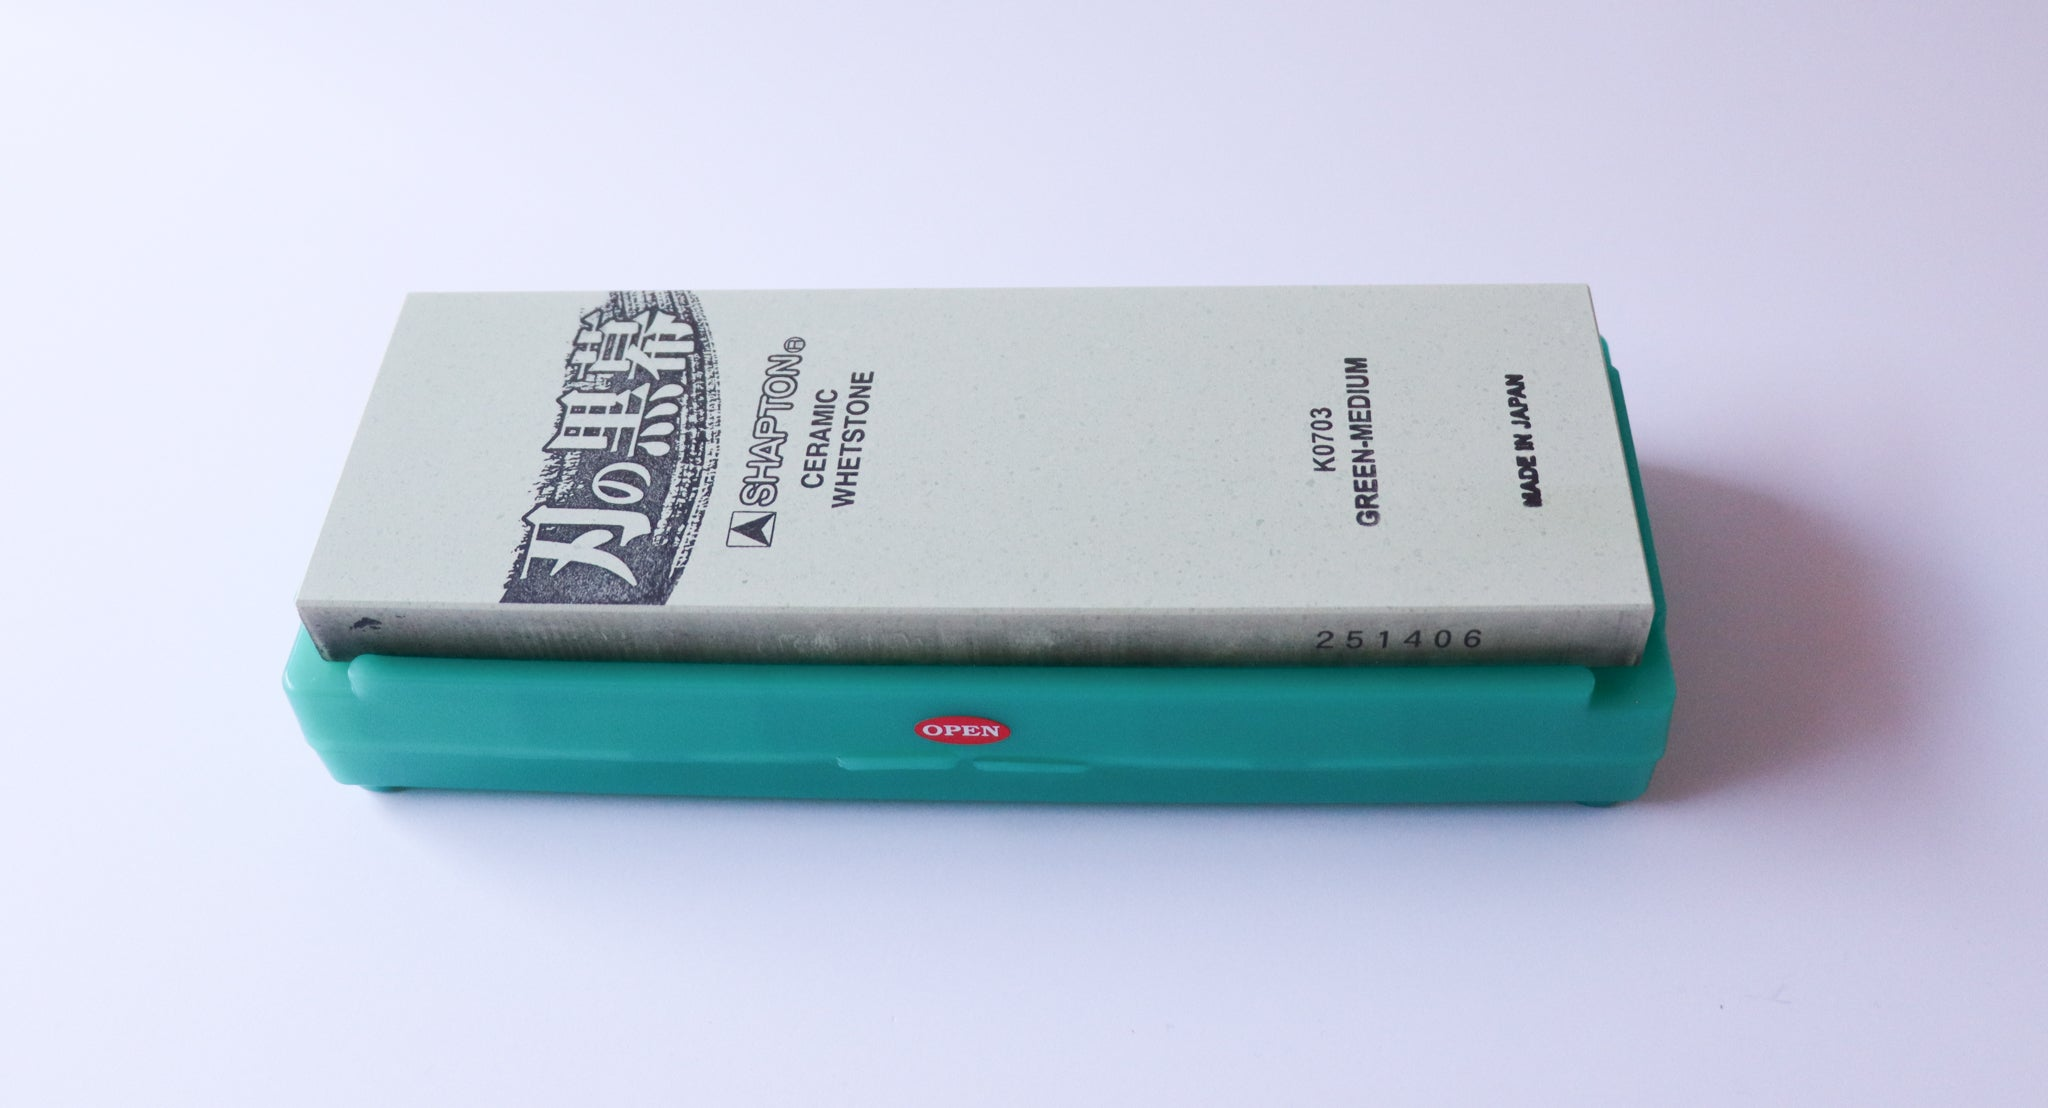 SHAPTON Professional Series 2000 grit , Medium-high Sharpening Stone